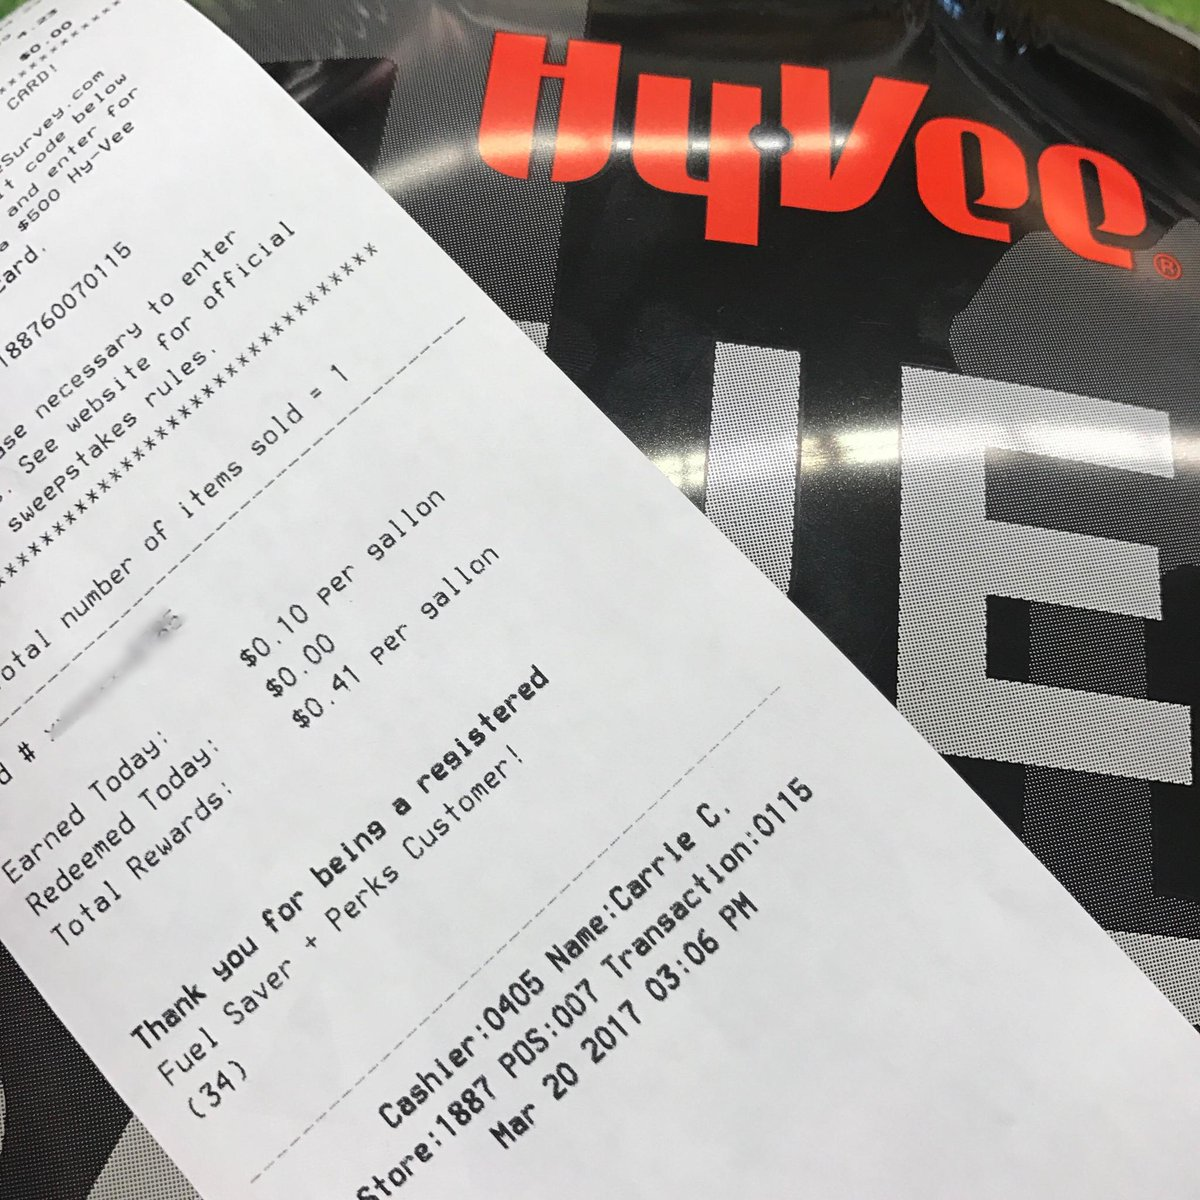 Share your receipt! How much Fuel Saver did you earn today in our Doub...